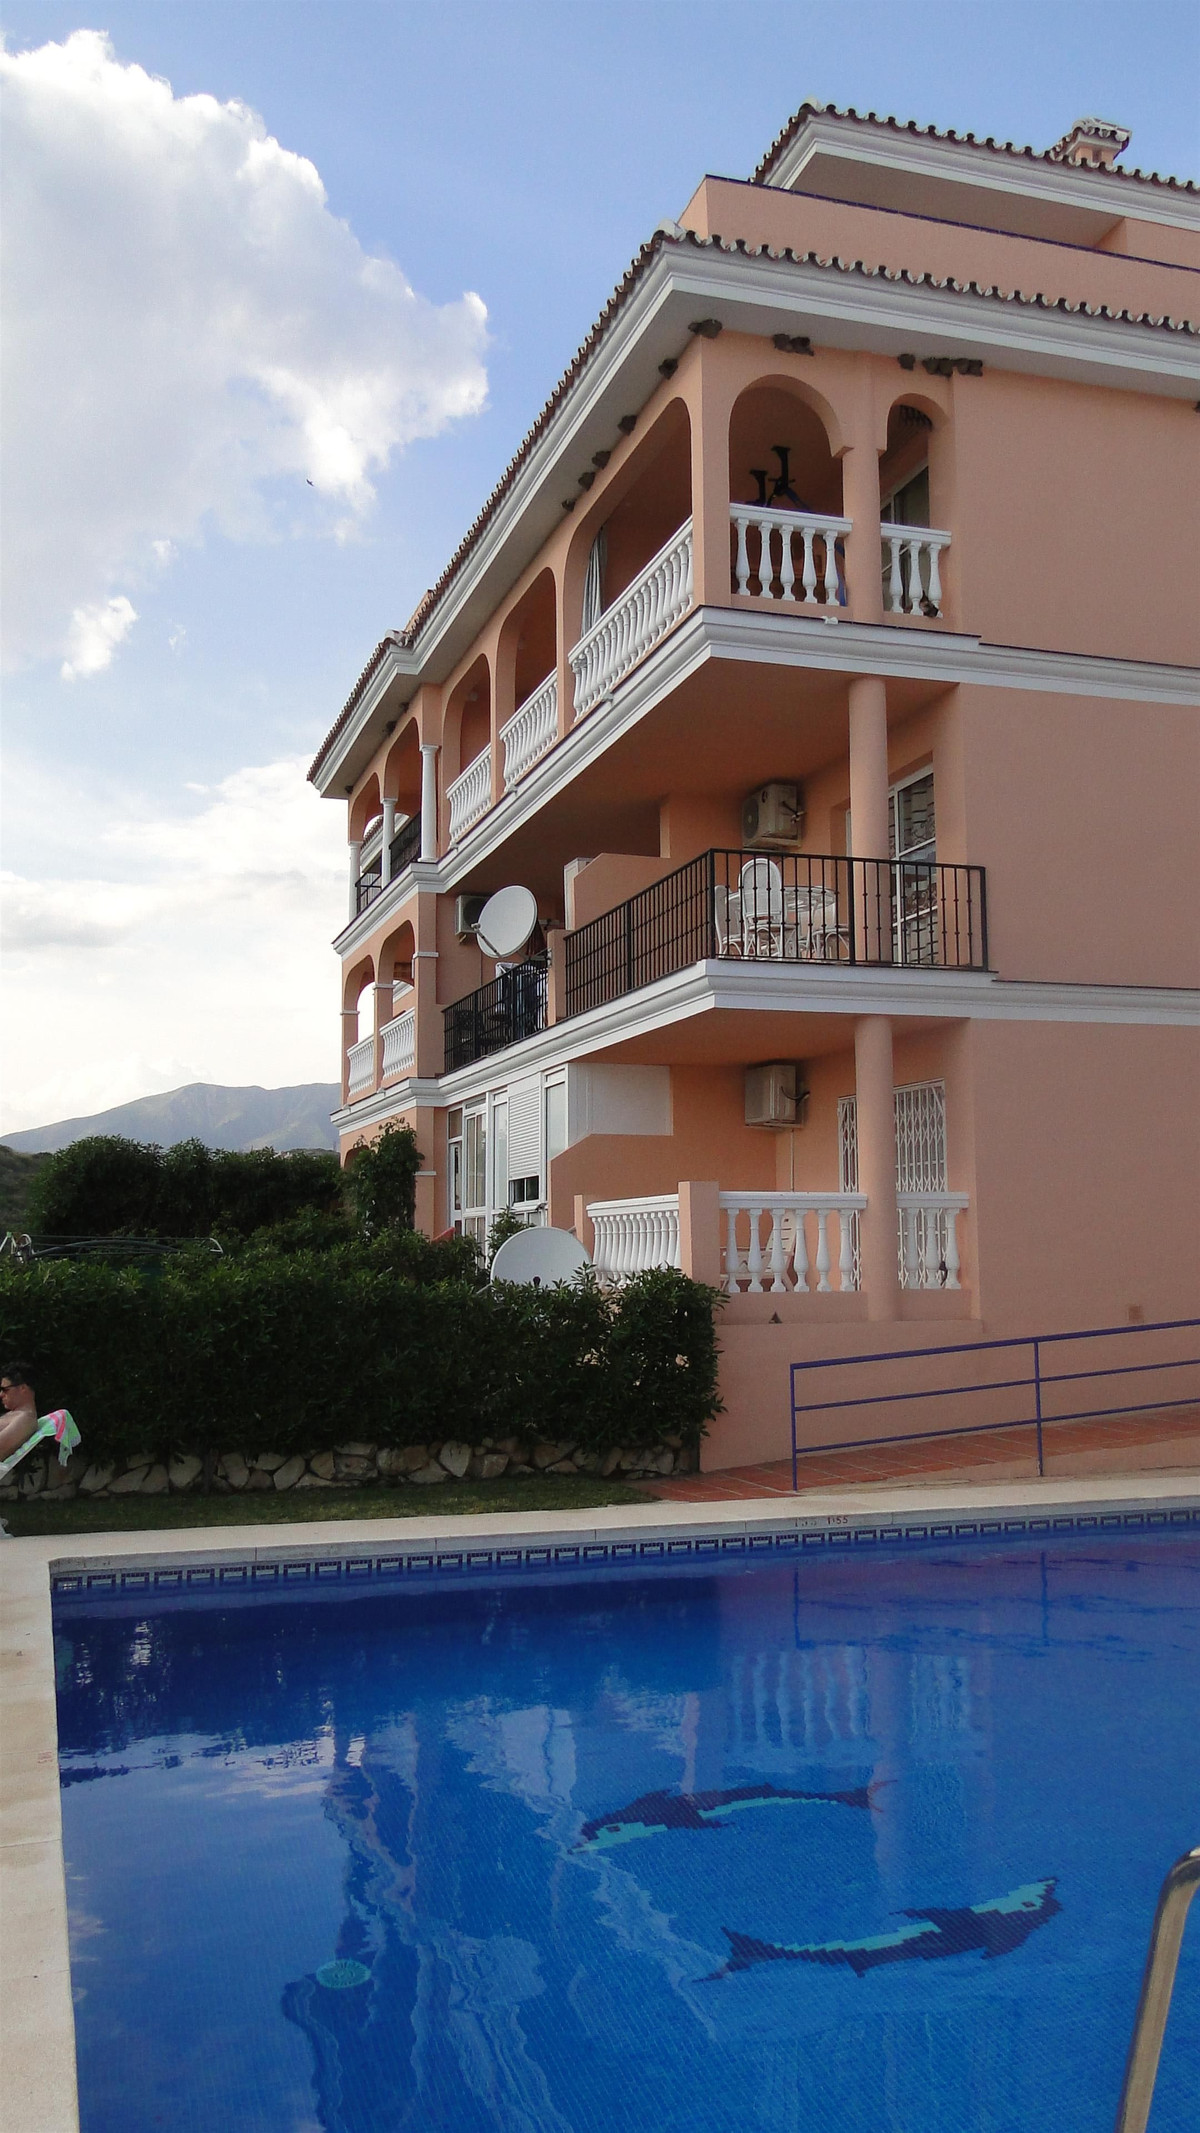 FANTASTIC VALUE FOR MONEY APARTMENT SITUATED ON A WELL MAINTAINED COMPLEX THAT IS WITHIN A FEW MINUT, Spain